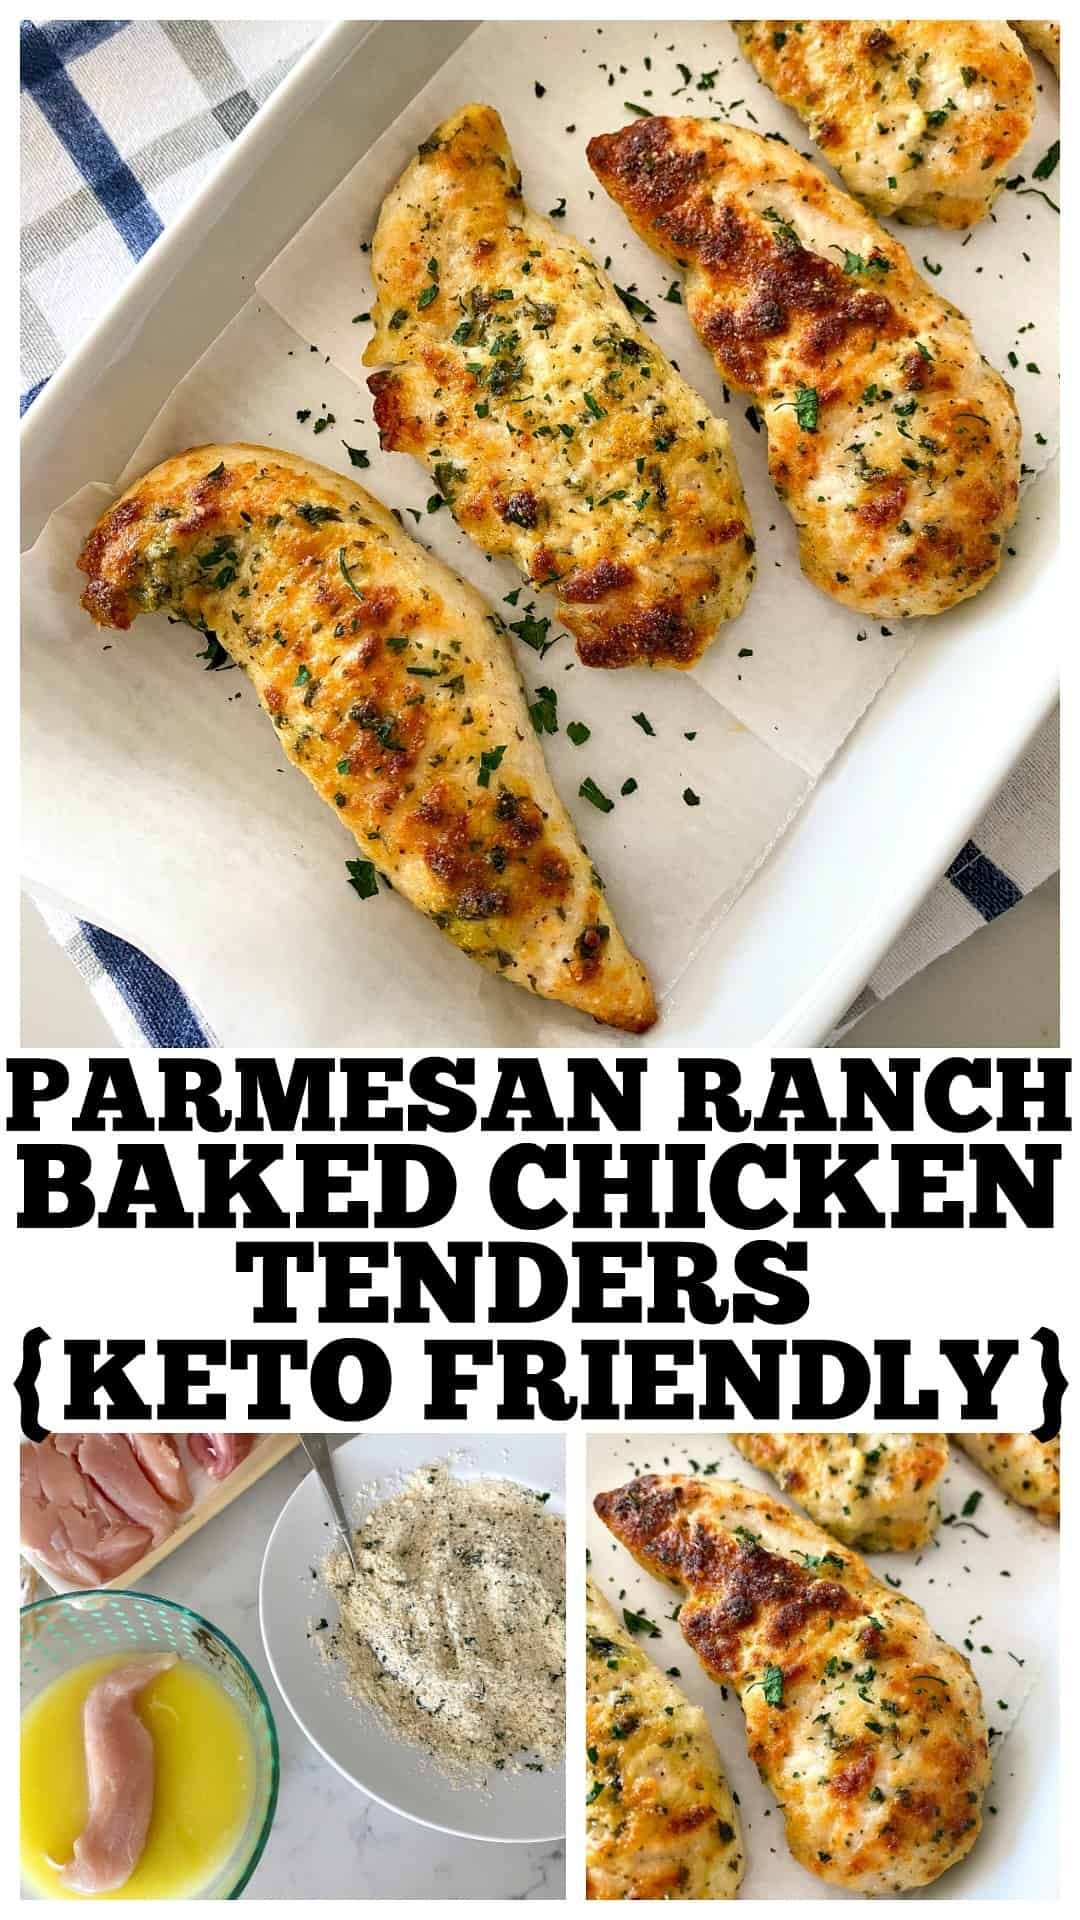 Parmesan Ranch Baked Chicken Tenders Recipe In 2020 Baked Chicken Tenders Oven Baked Chicken Tenders Baked Chicken